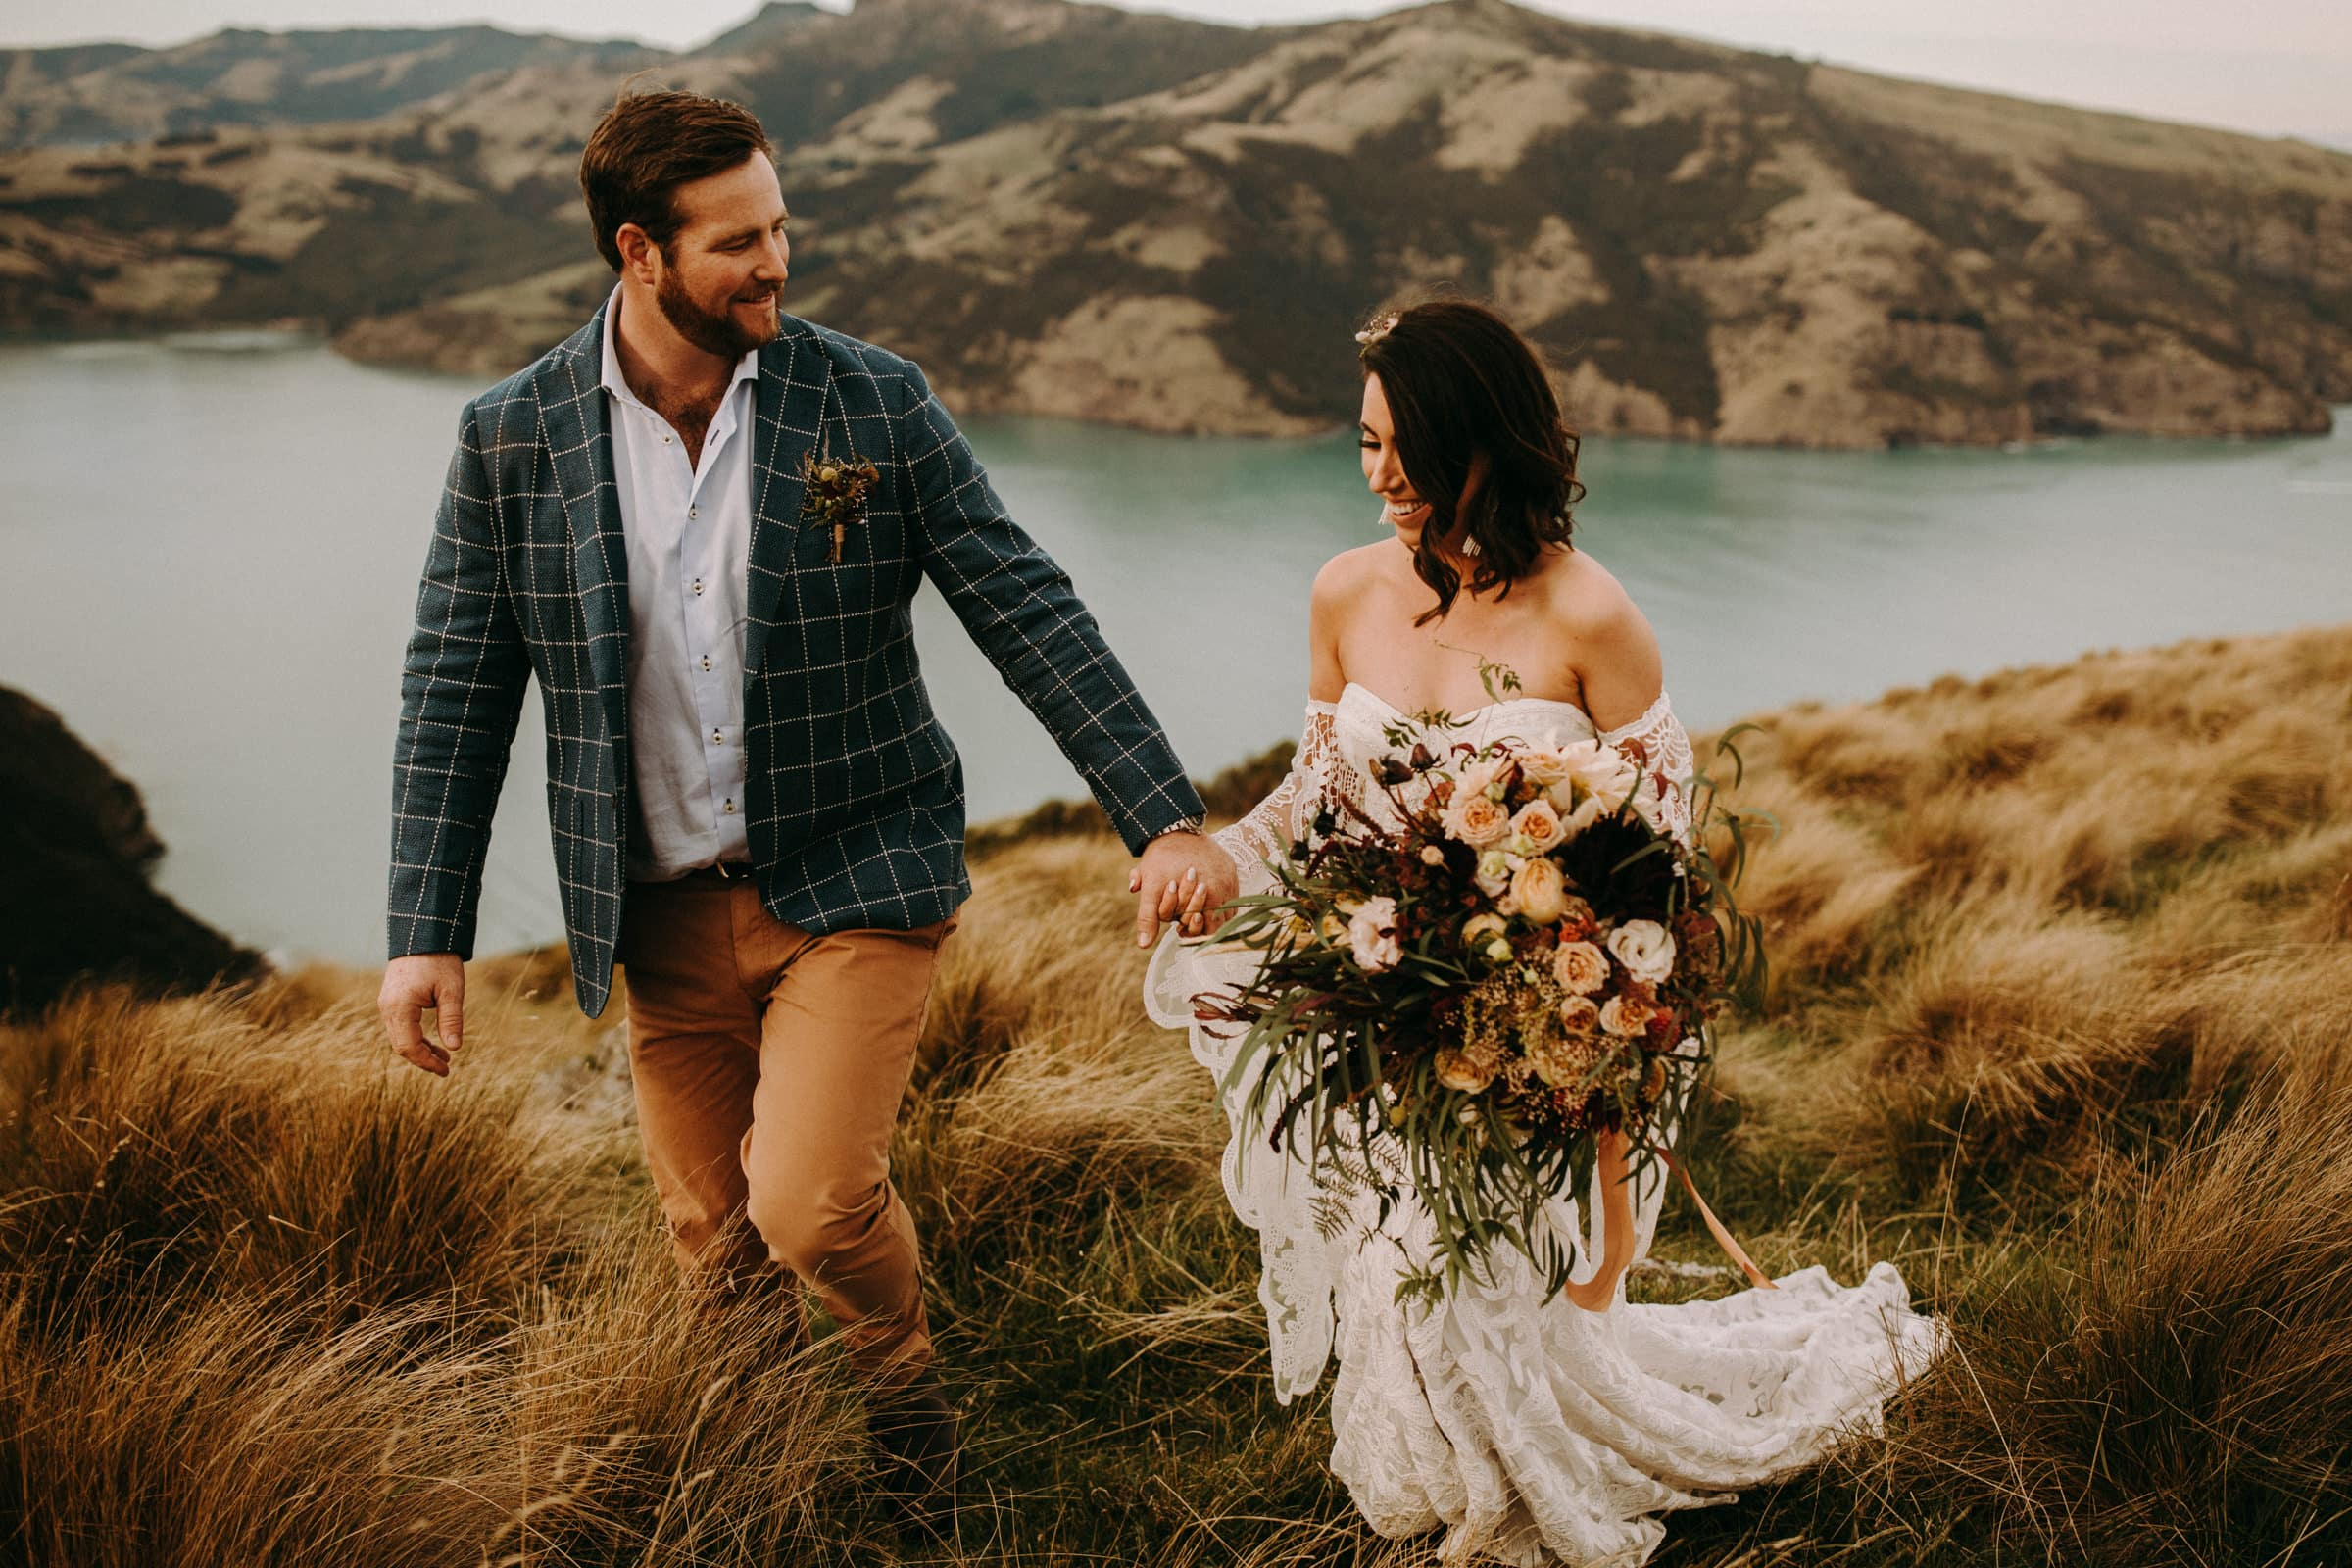 A wedding couple is looking at each other and walking in a meadow.